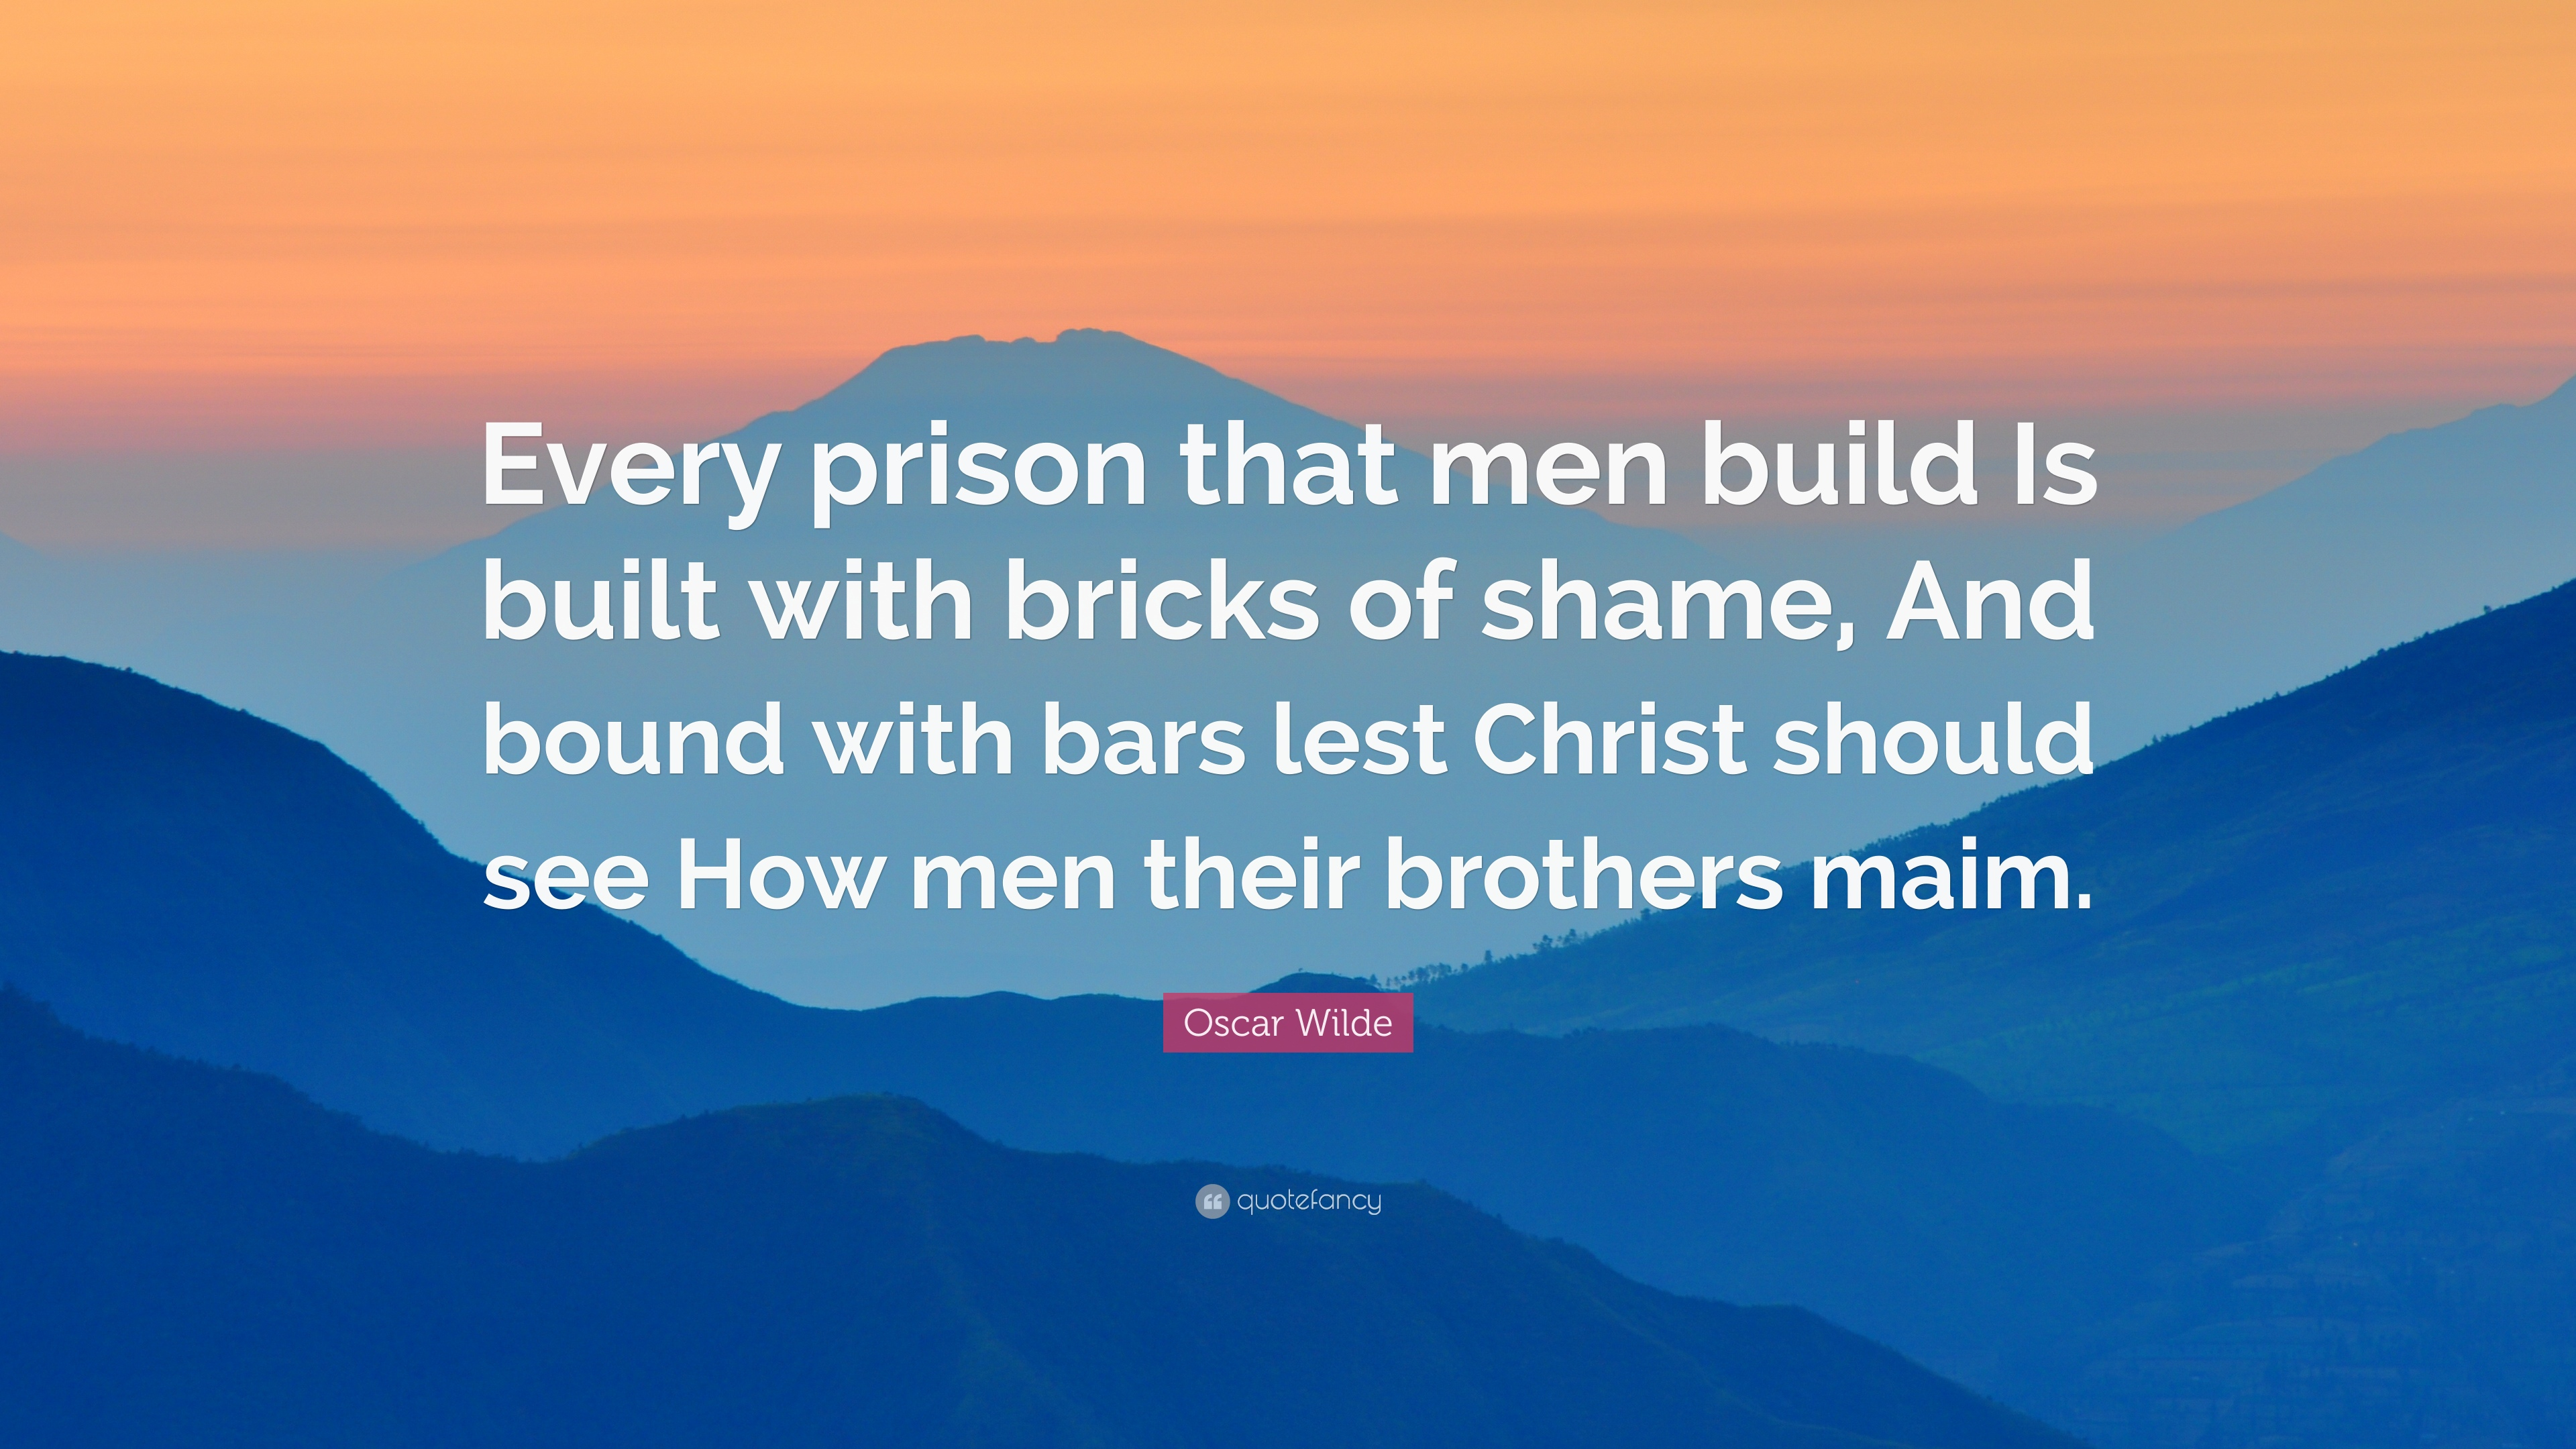 oscar wilde quote u201cevery prison that men build is built with